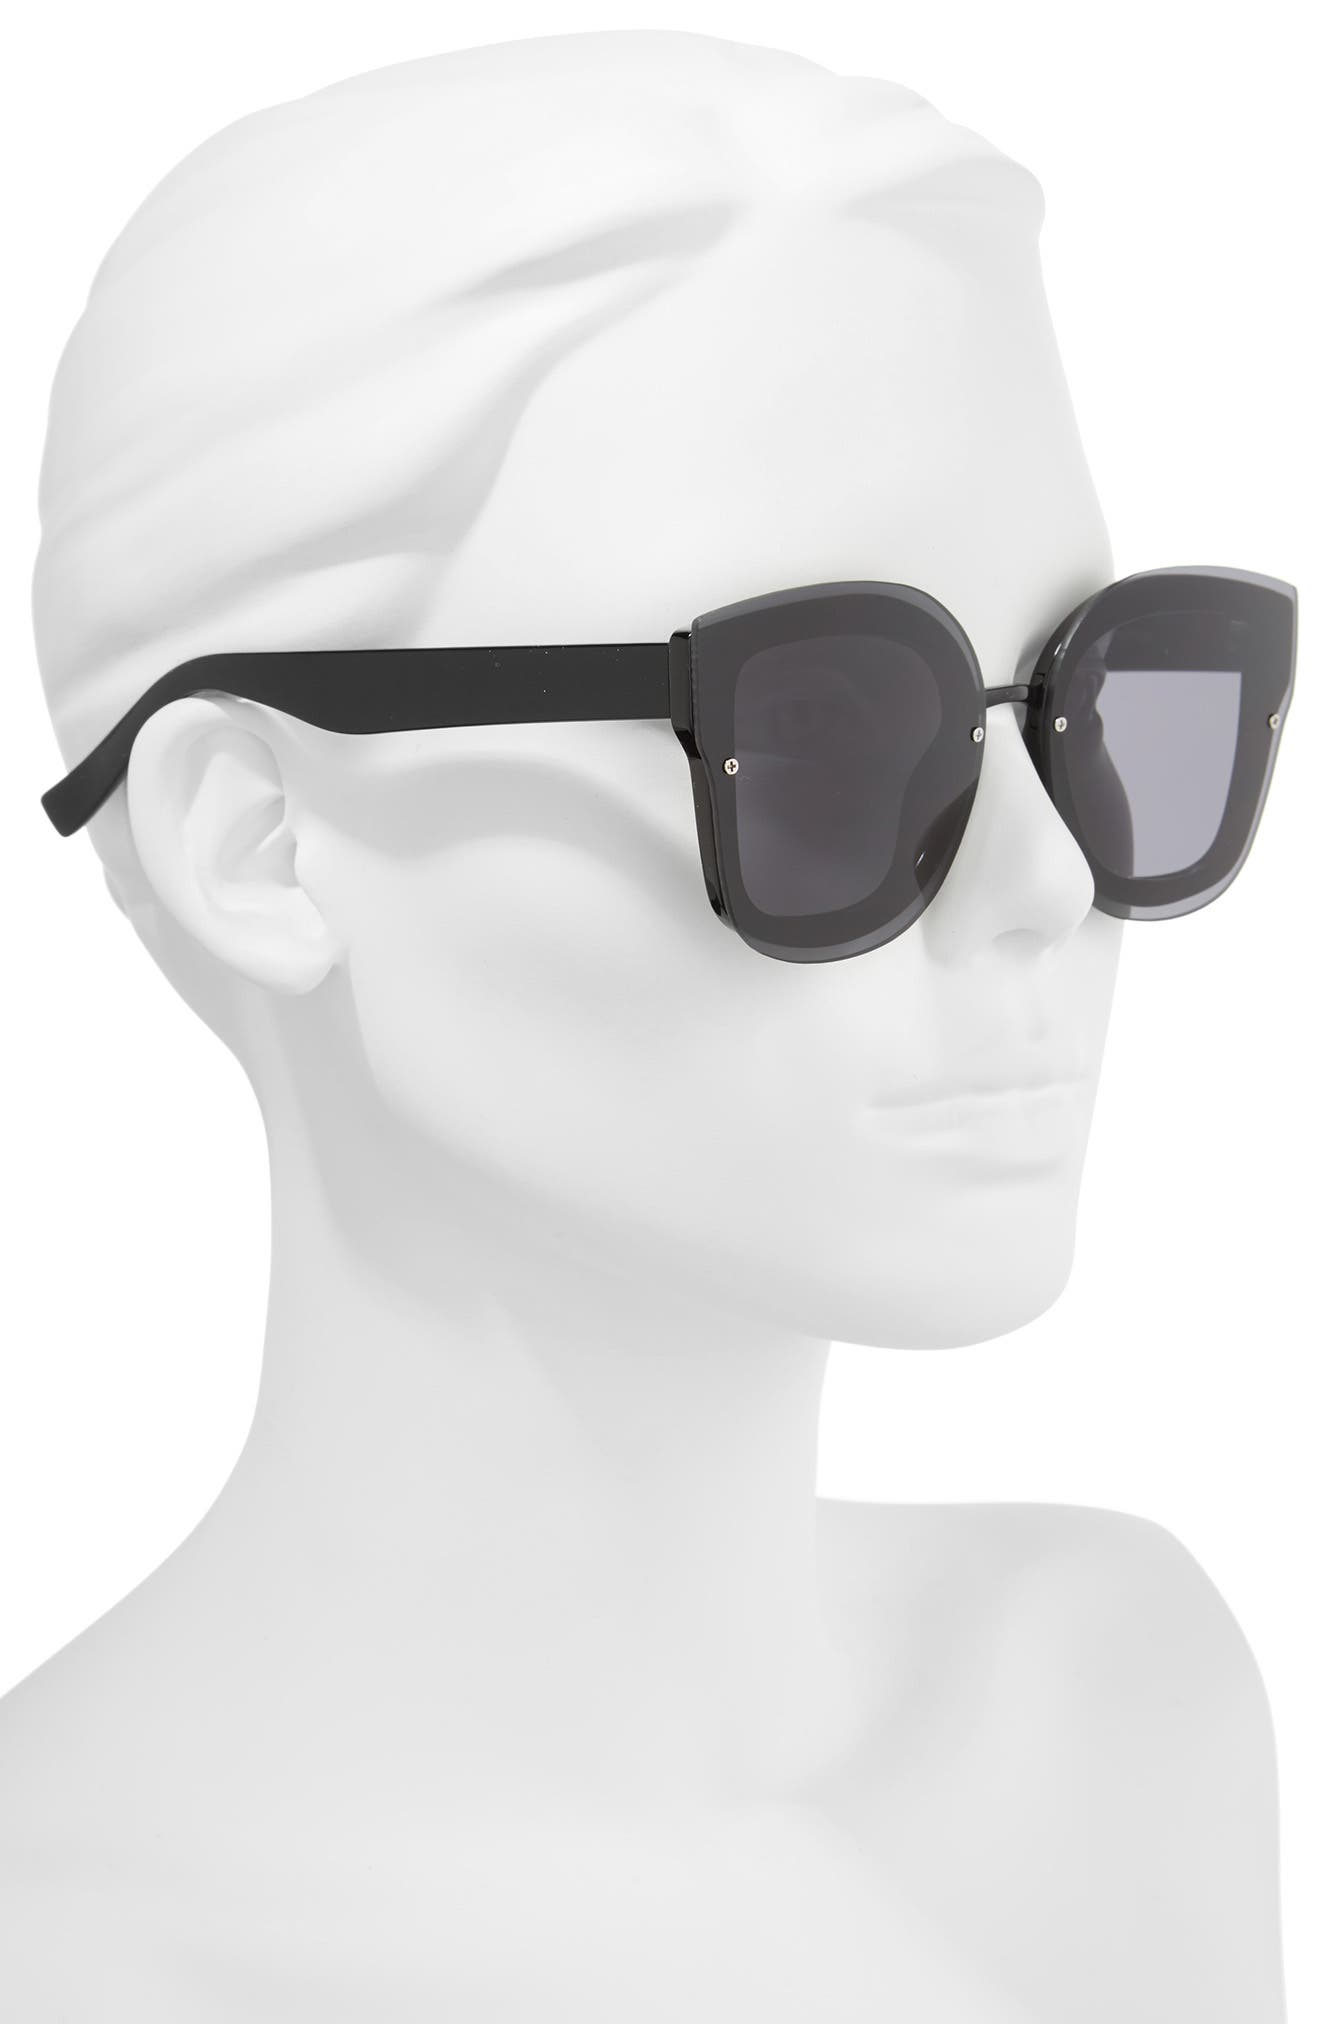 50mm Squared-Off Sunglasses,                             Alternate thumbnail 2, color,                             001